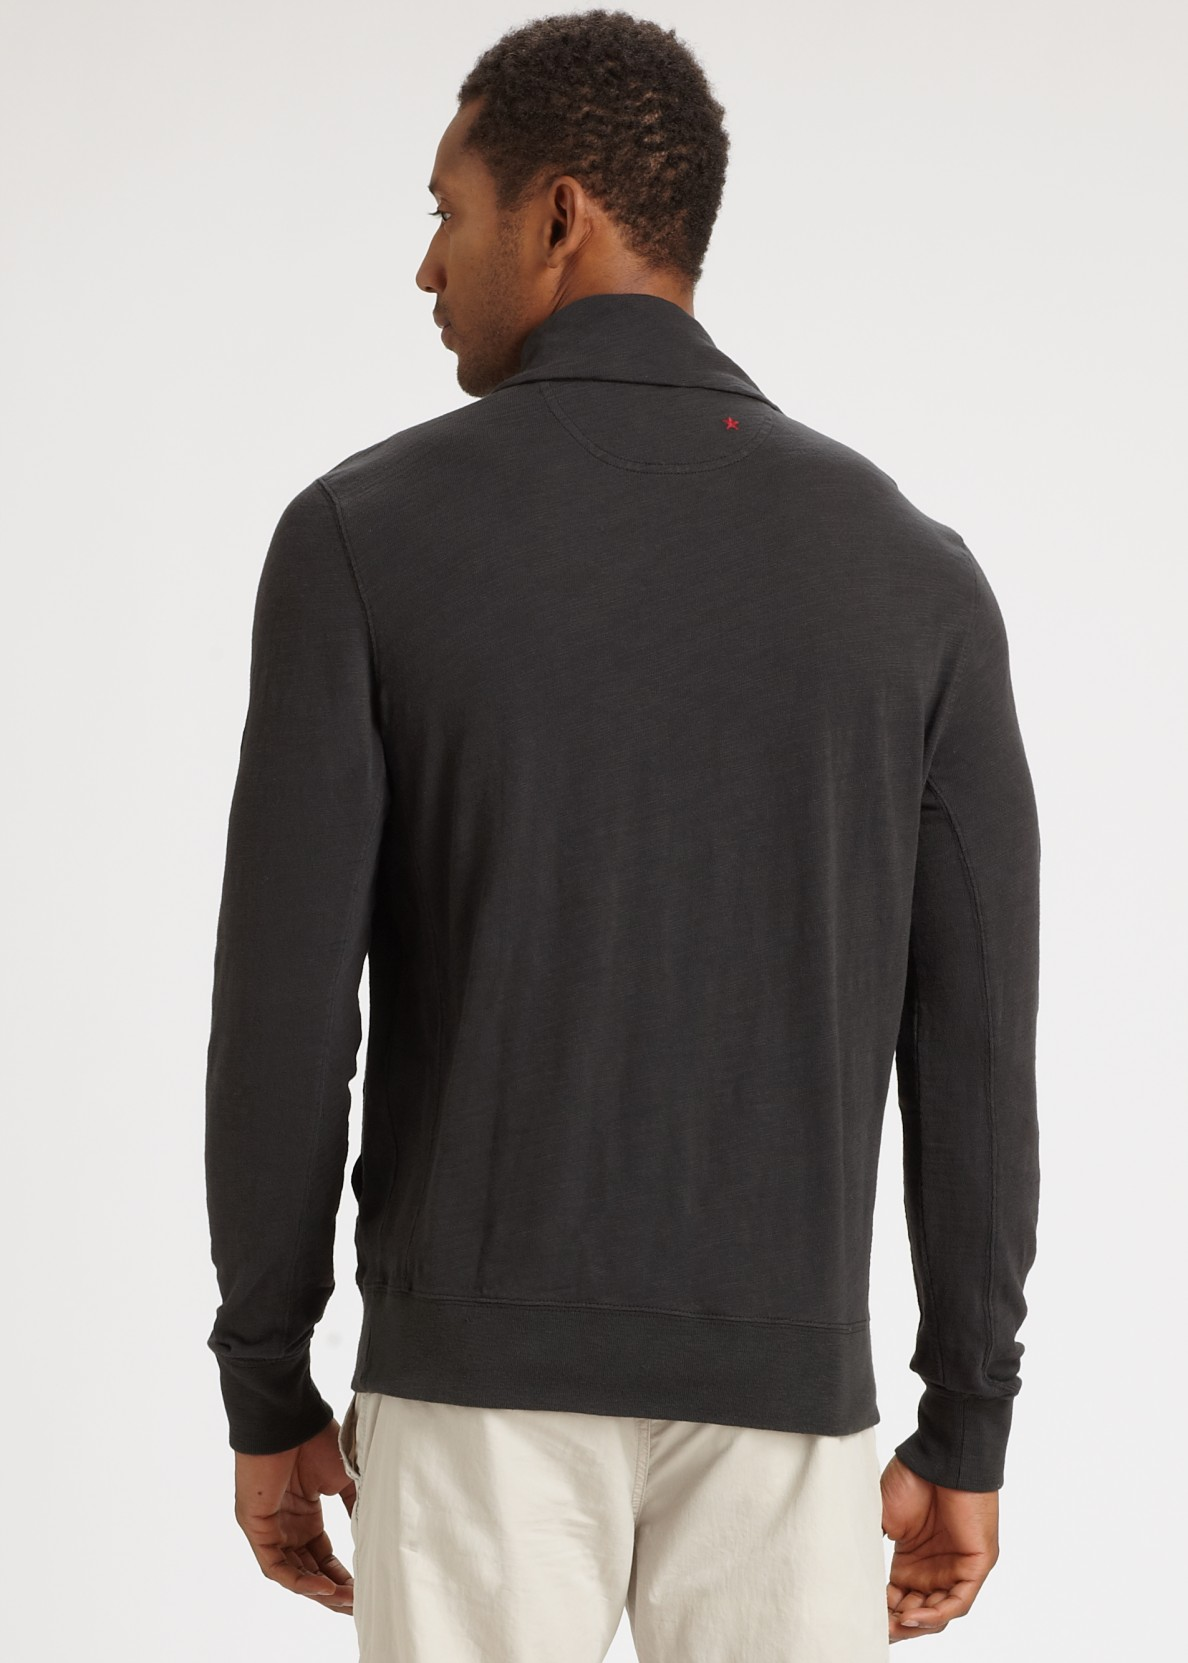 Quiksilver Sweater